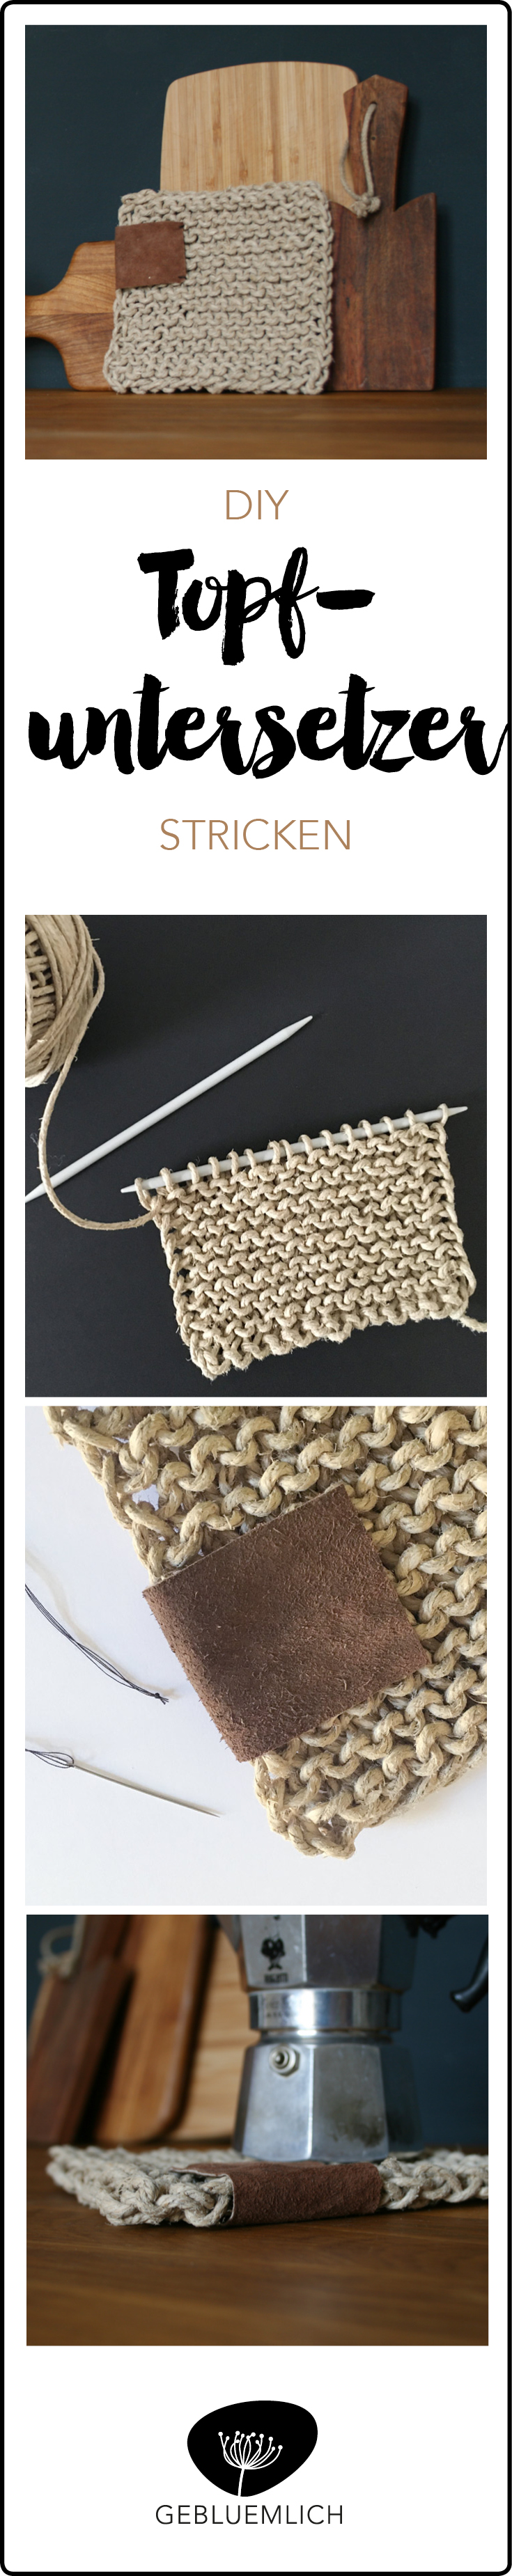 Pinterest DIY Topfuntersetzer stricken